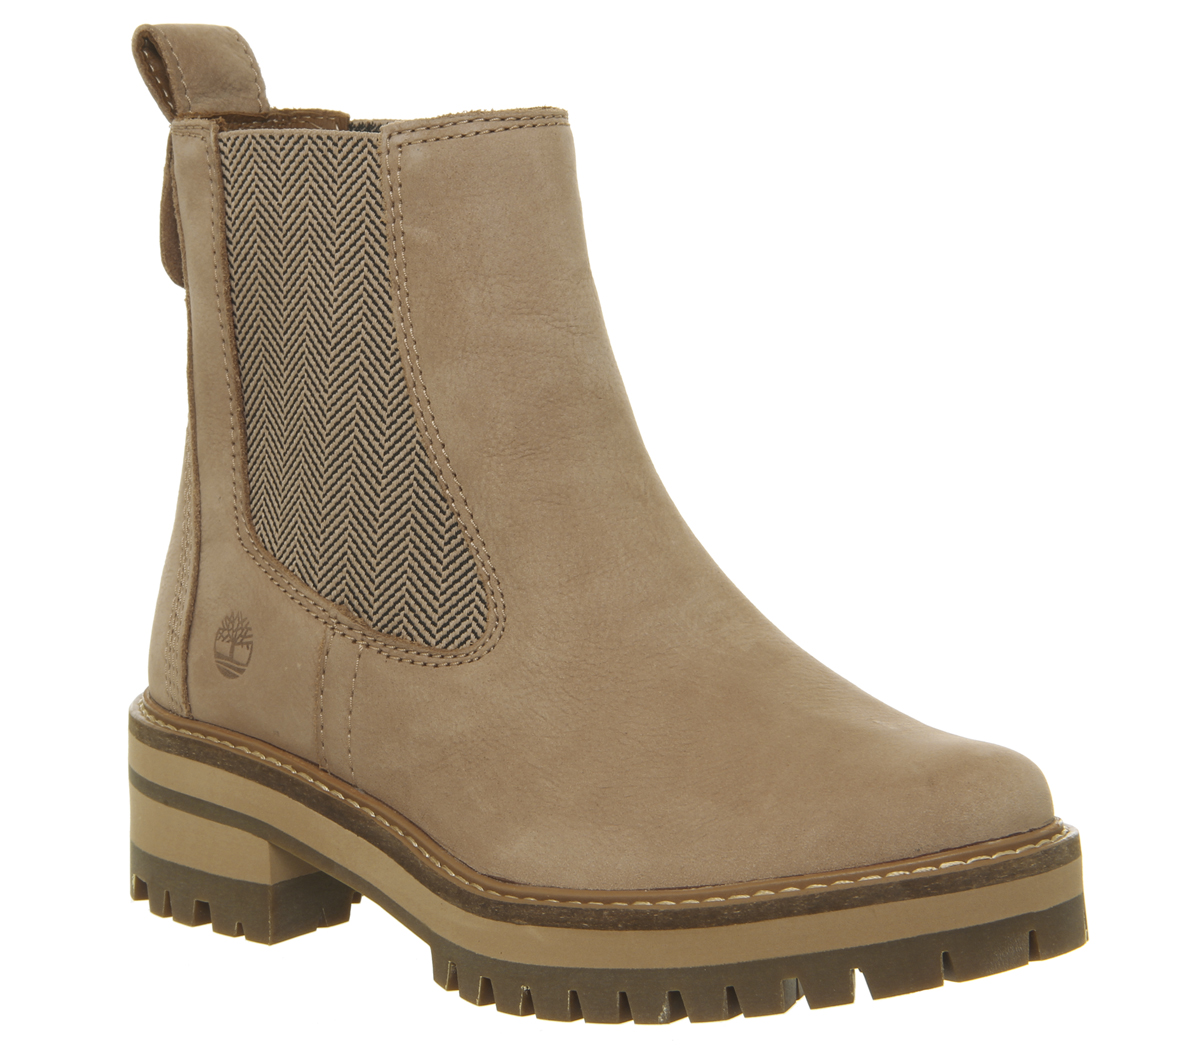 SENTINEL Womens Timberland Courmayer Valle Chelsea Boots TAWNY stivali  marroni 07ffdd5094a